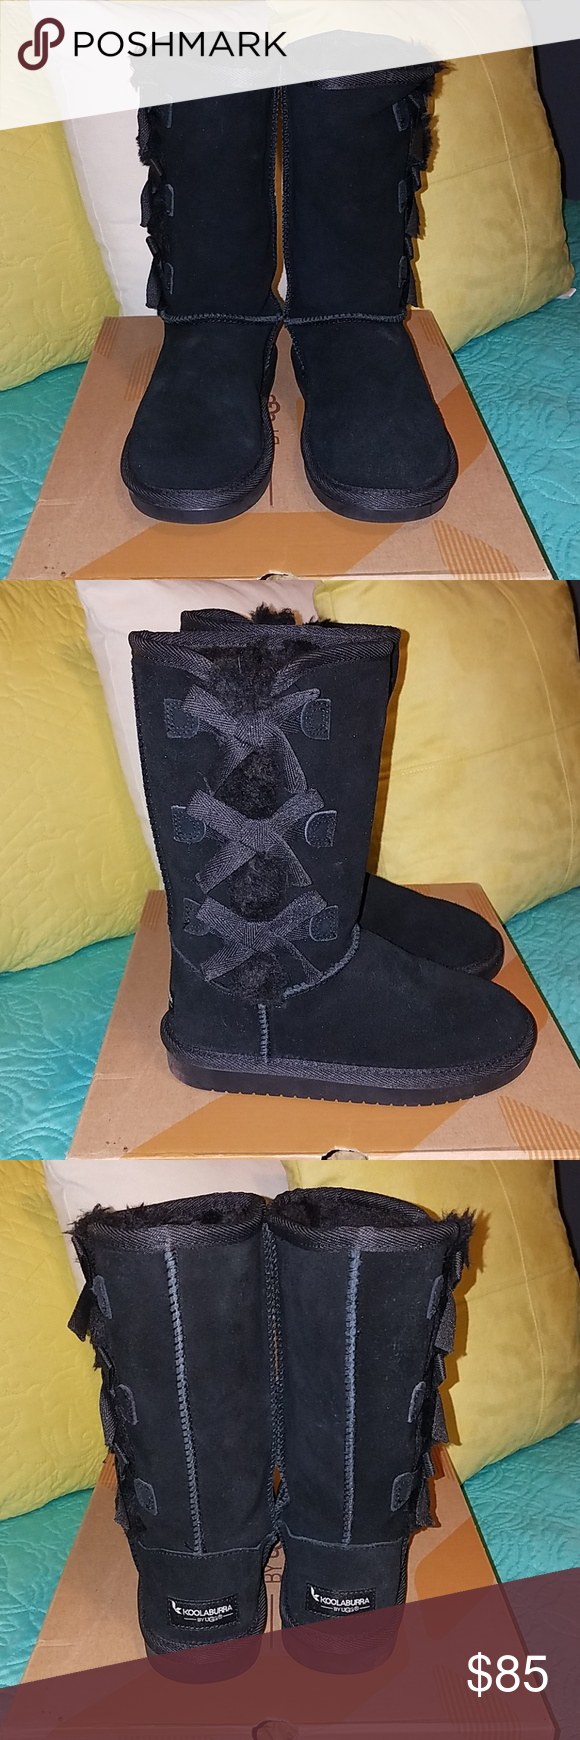 Black UGG boots Girls black UGG boits size 13. NWB cute bow detail on the side of the boots! UGG Shoes #uggbootsoutfitblackgirl